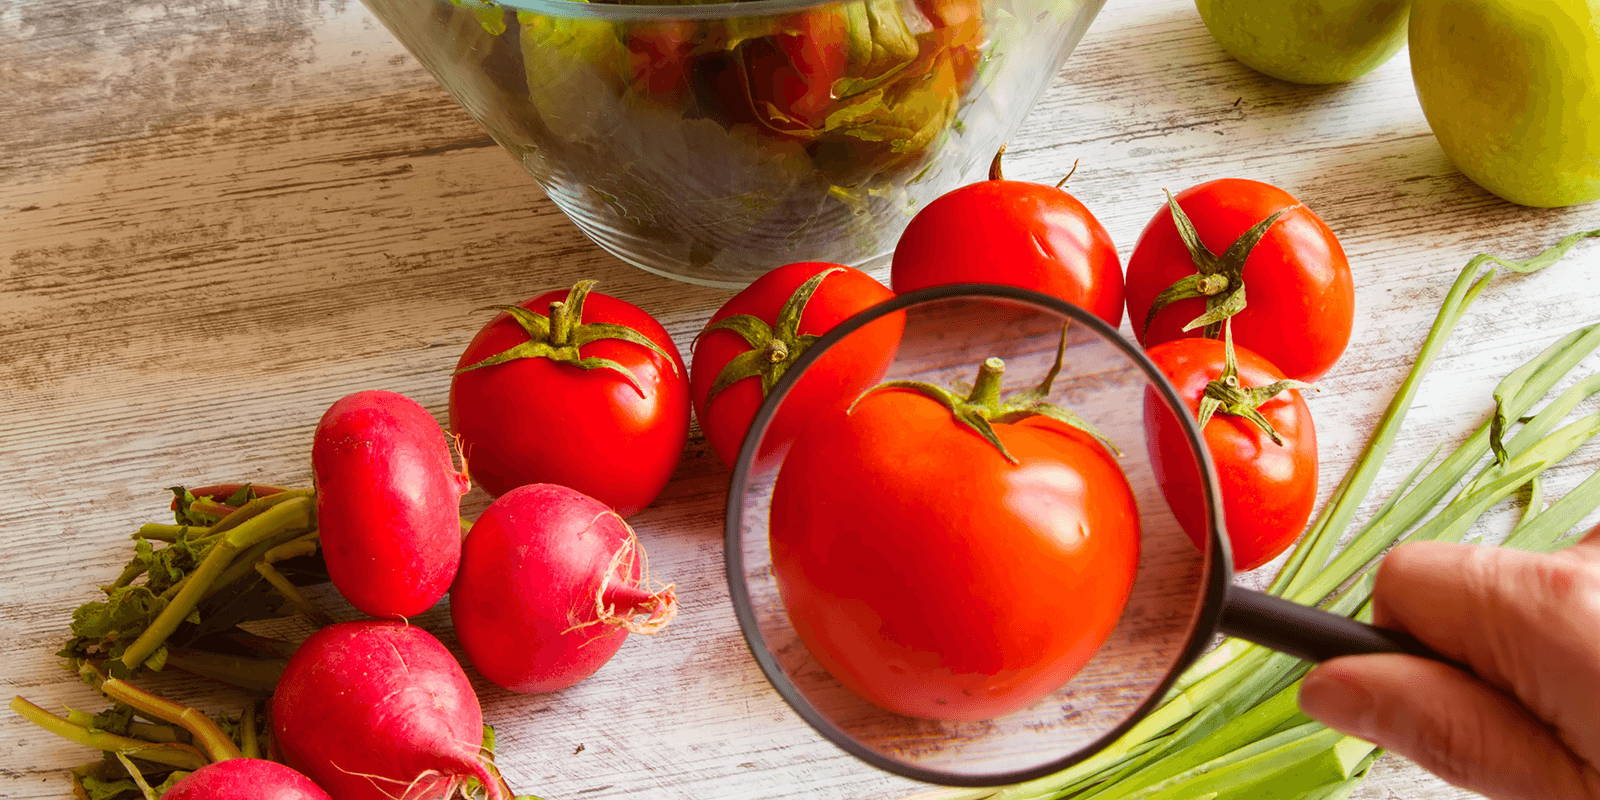 Fresh fruit on counter with a magnifying glass zoomed in on a tomato.